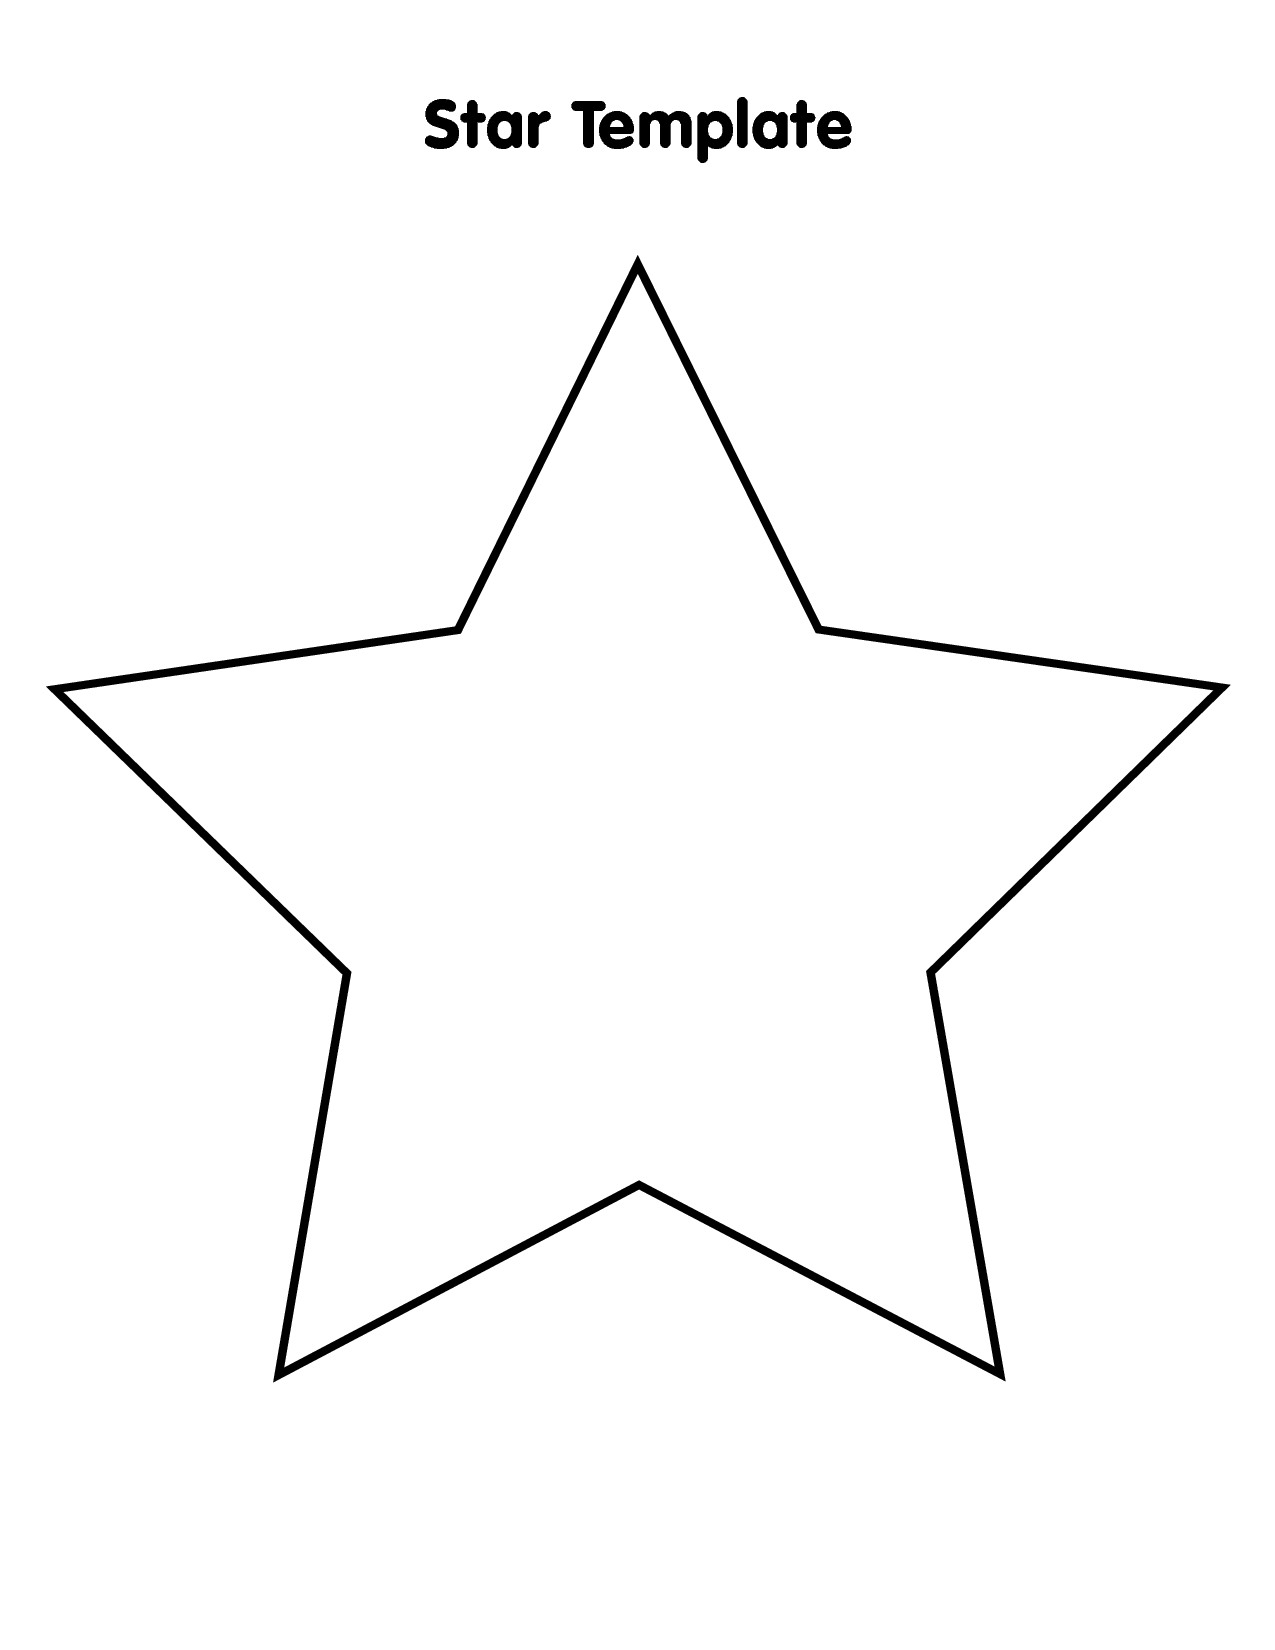 Free Star Template Download Free Clip Art Free Clip Art